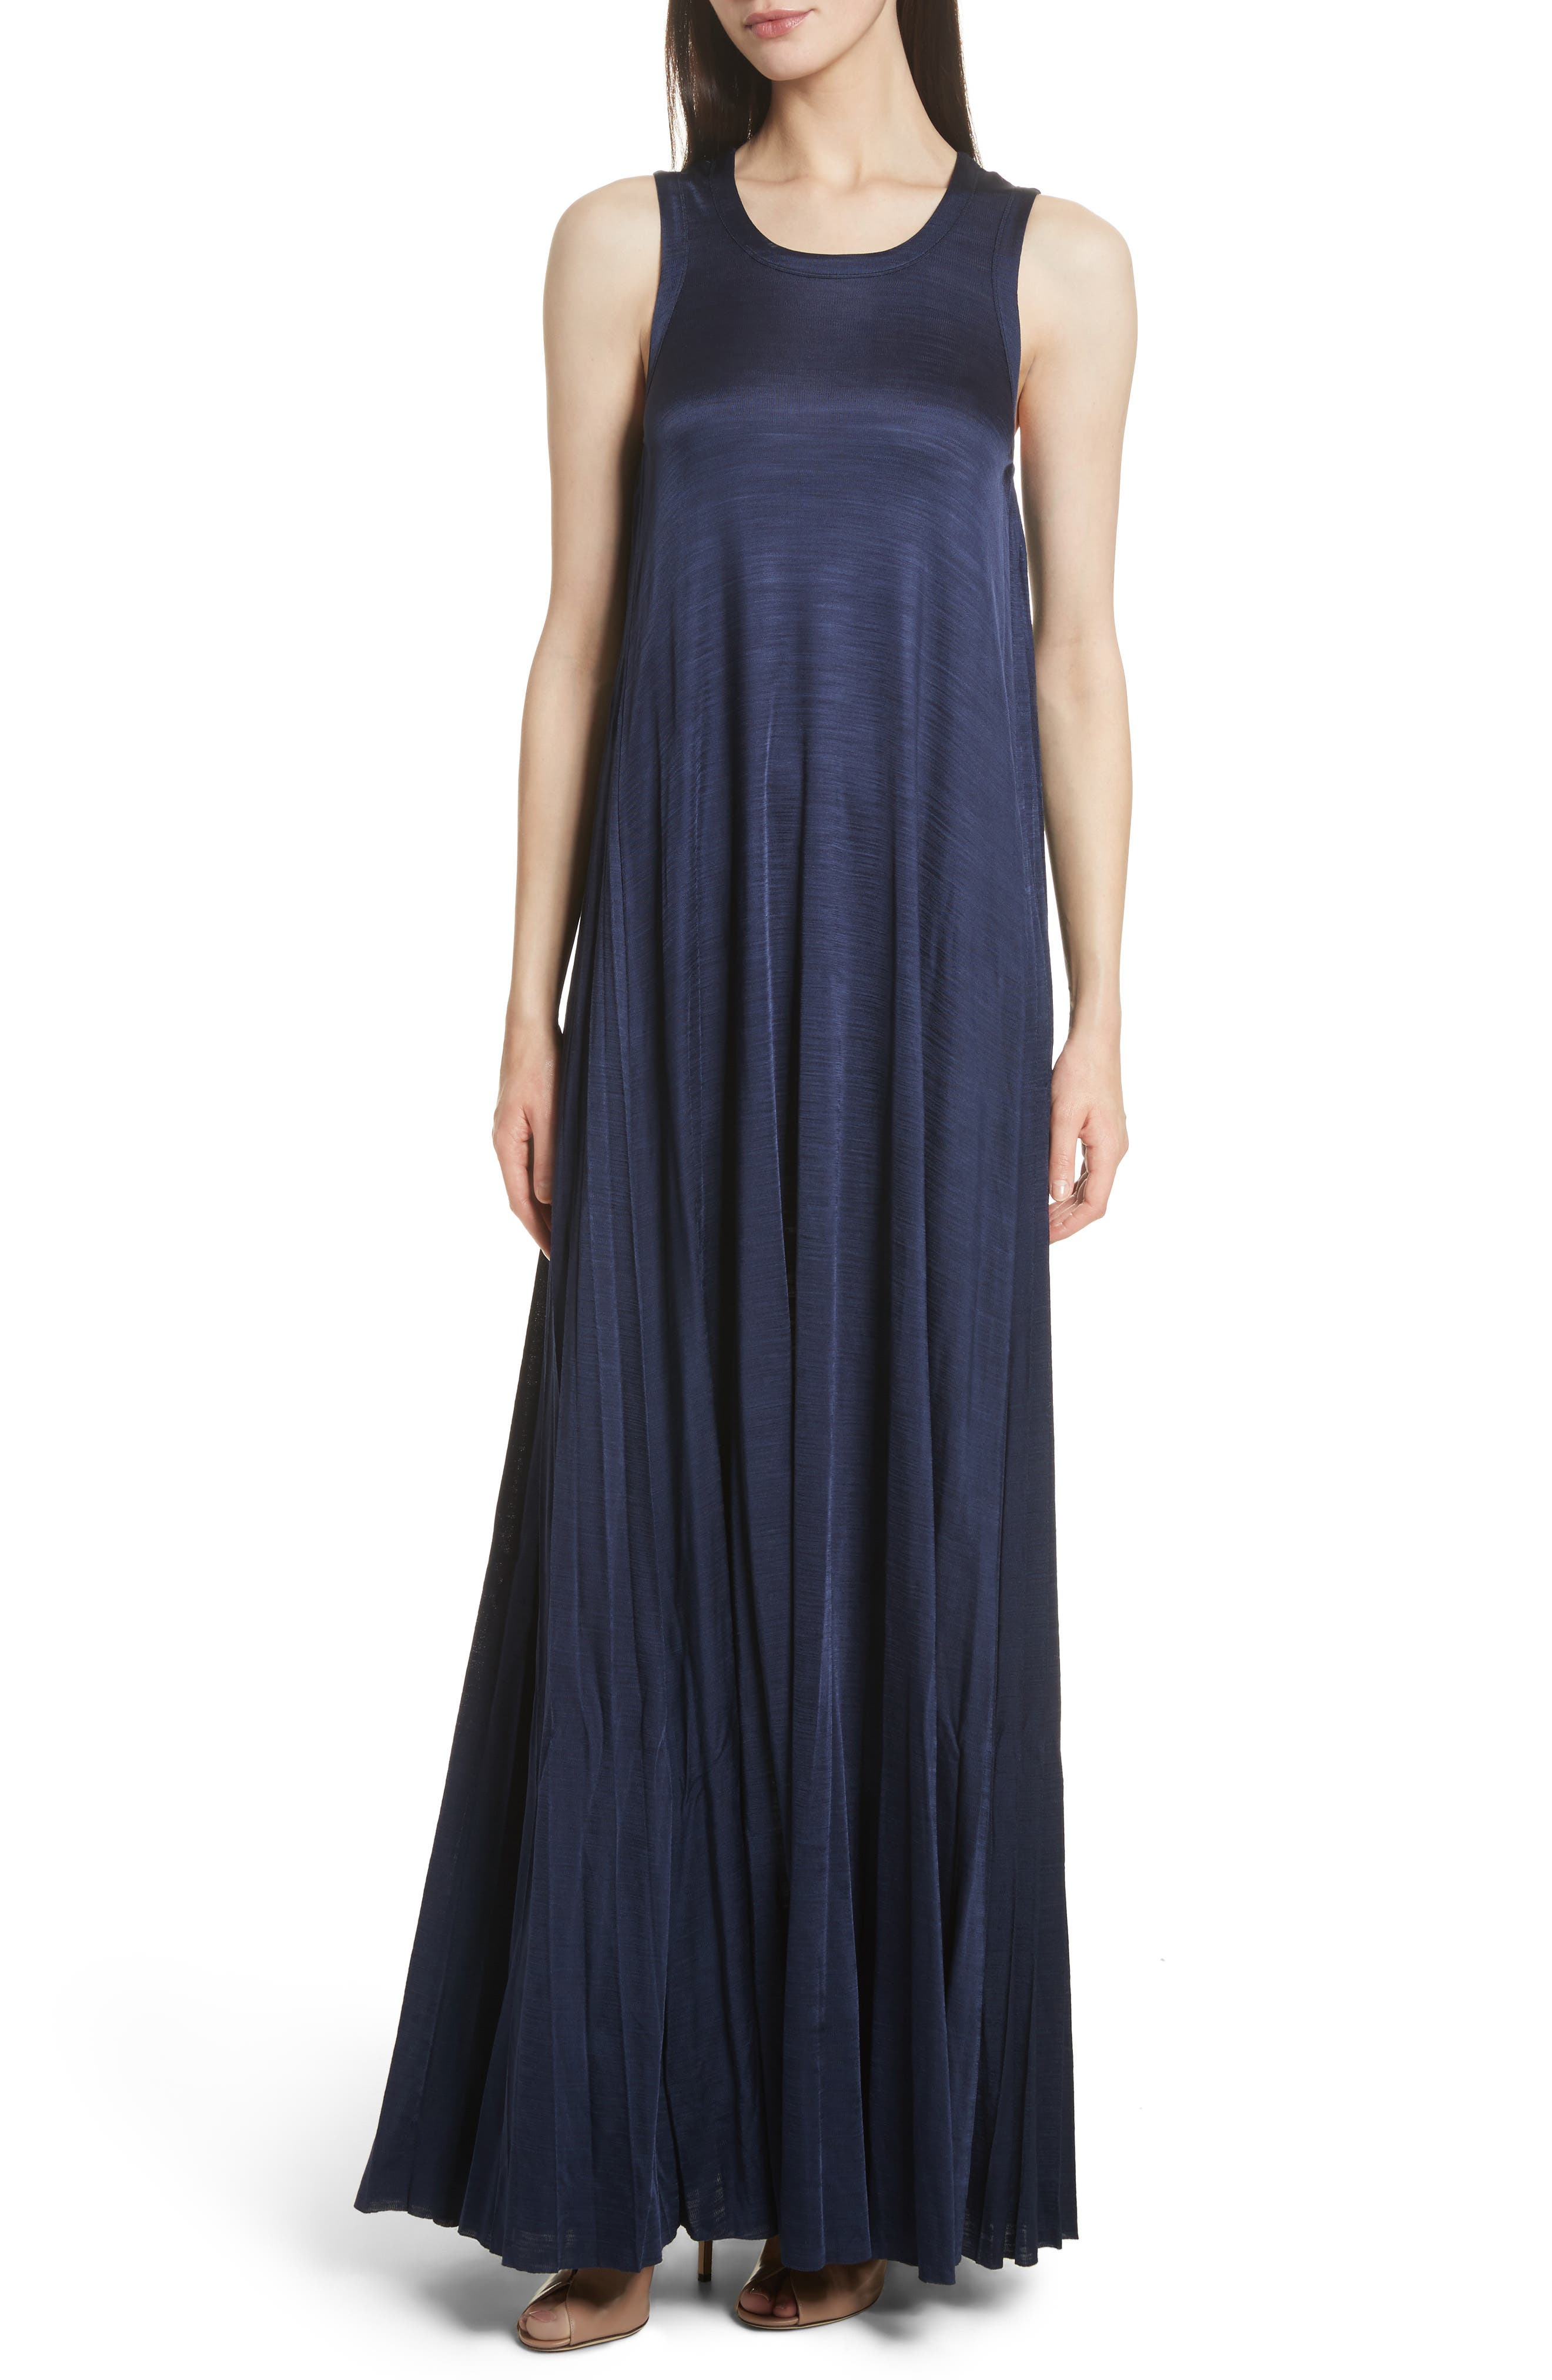 Elizabeth and James Abbott Maxi Dress